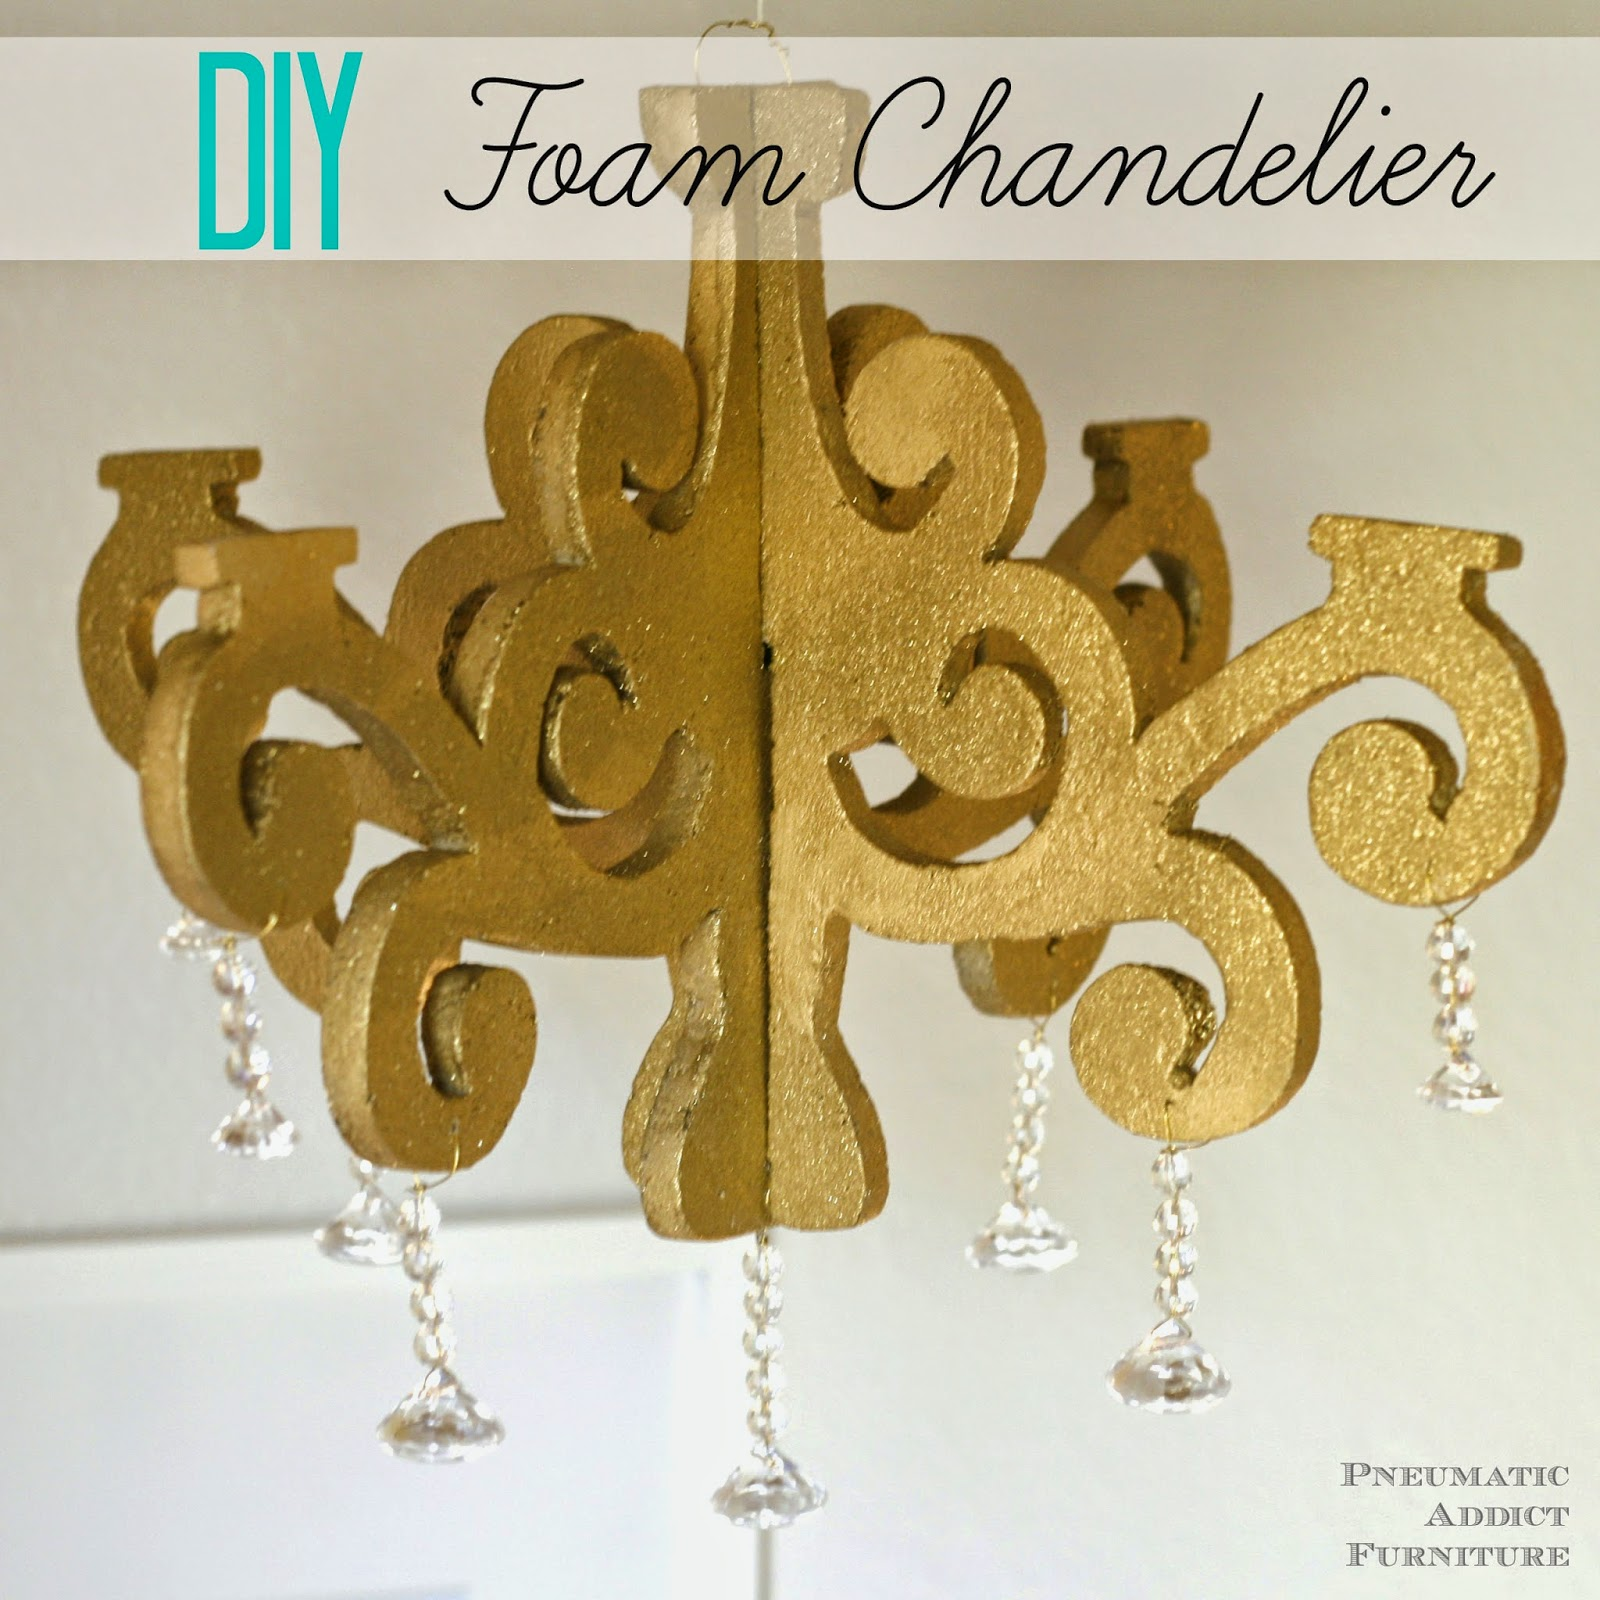 Make your own DIY chandelier using inexpensive craft foam